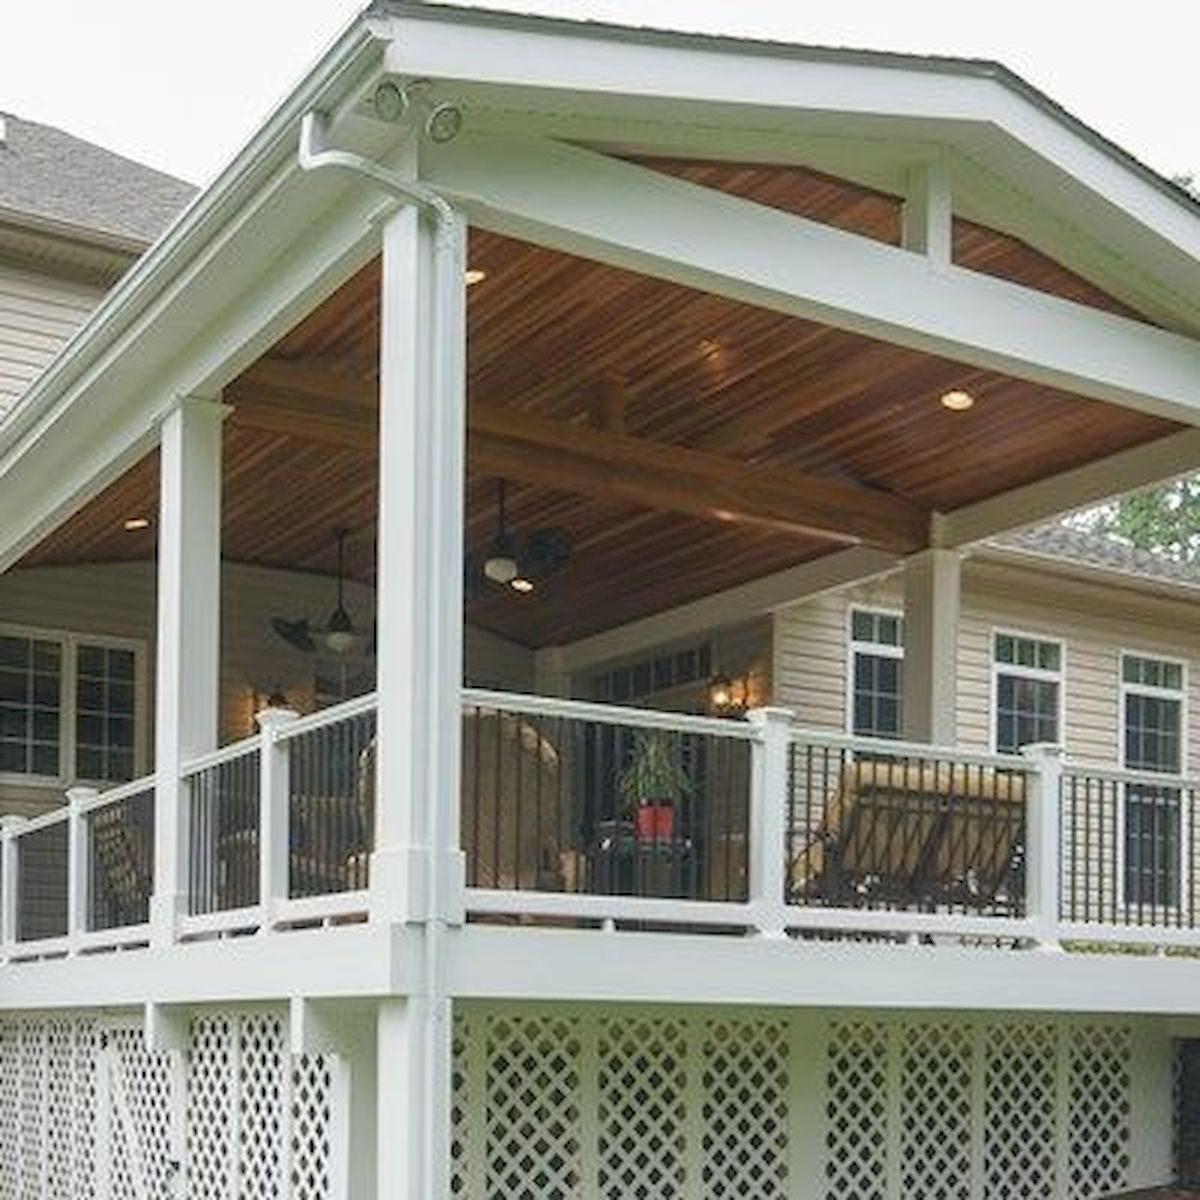 Covered Deck And Pergola Roof Design Ideas 12 In 2020 Roof Design Pergola With Roof Pergola